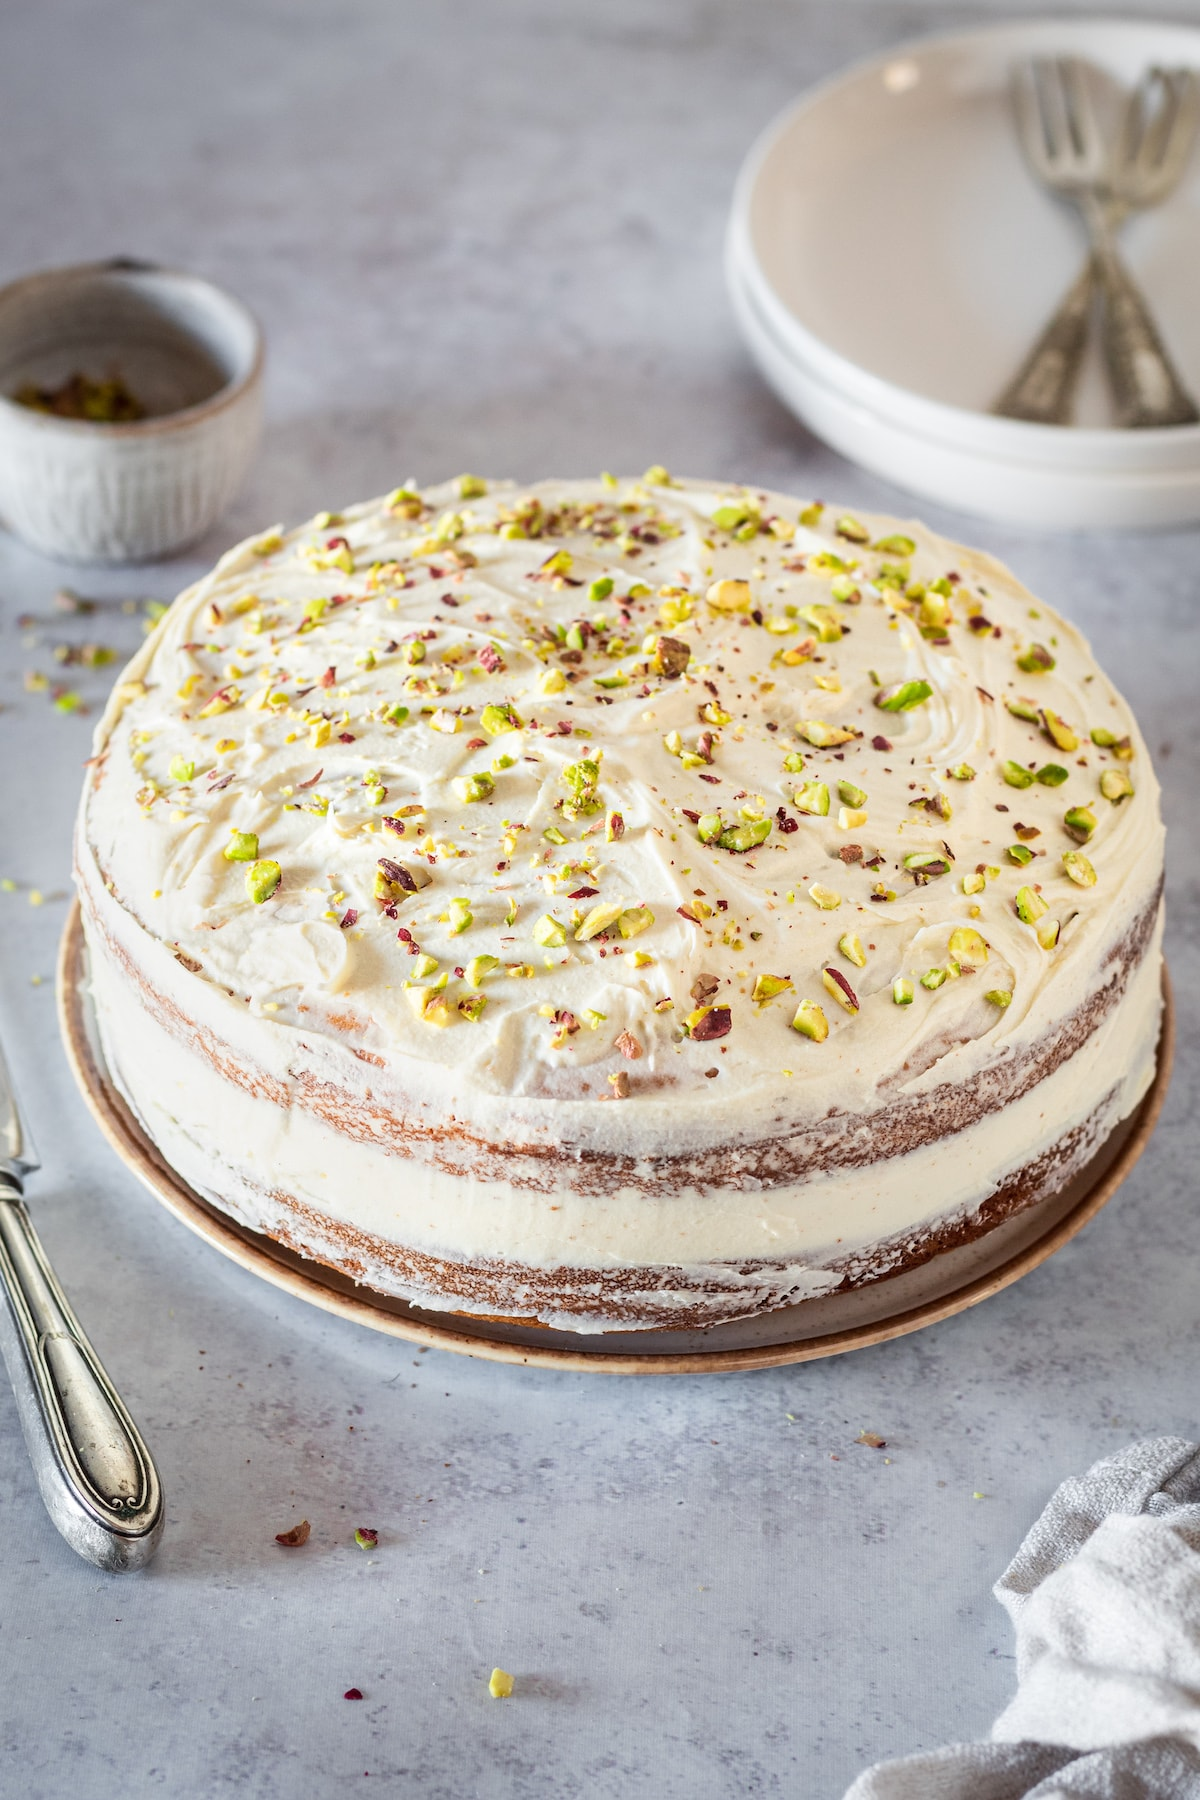 Whole Pistachio Cake with serving plates and forks in background